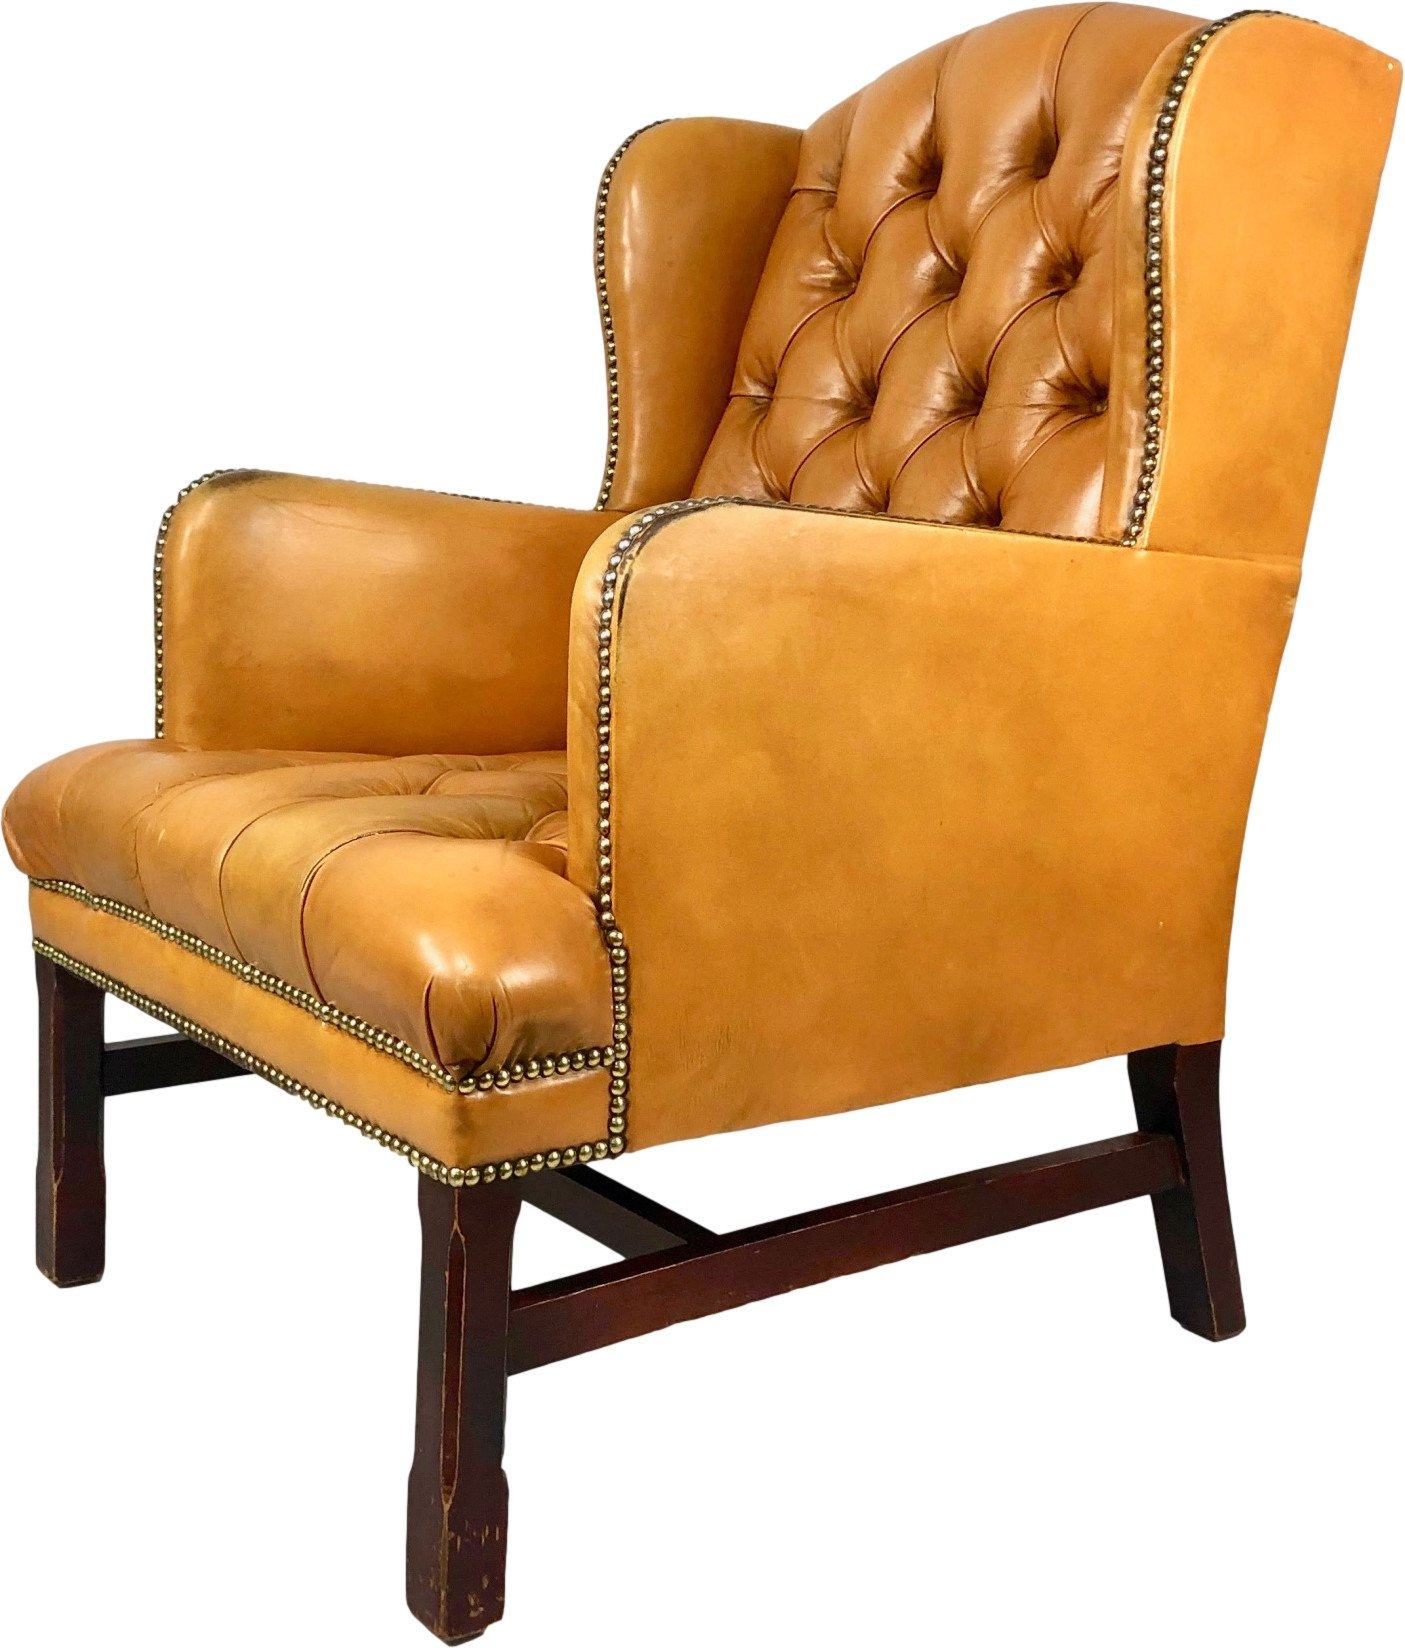 Armchair, United Kingdom, 1950s